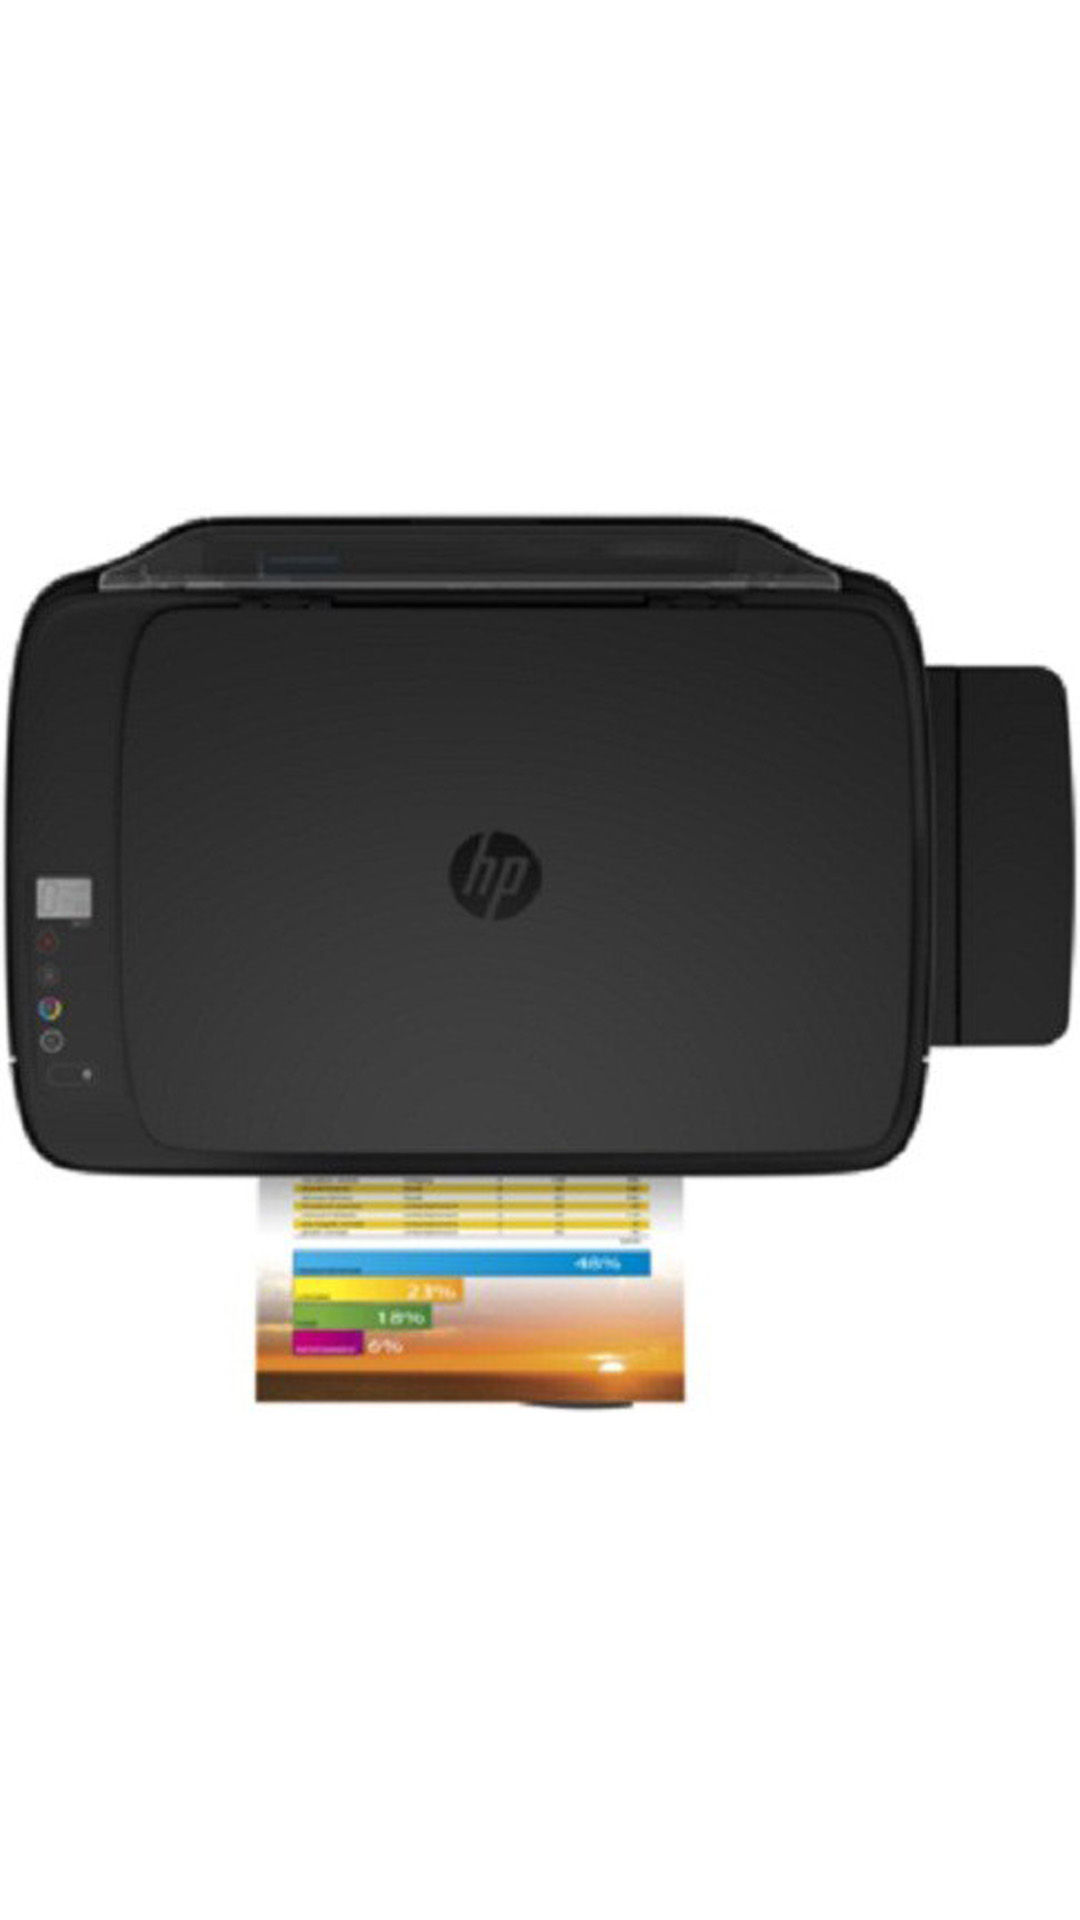 HP GT 5810 Multi-Function Inkjet Printer (Black)